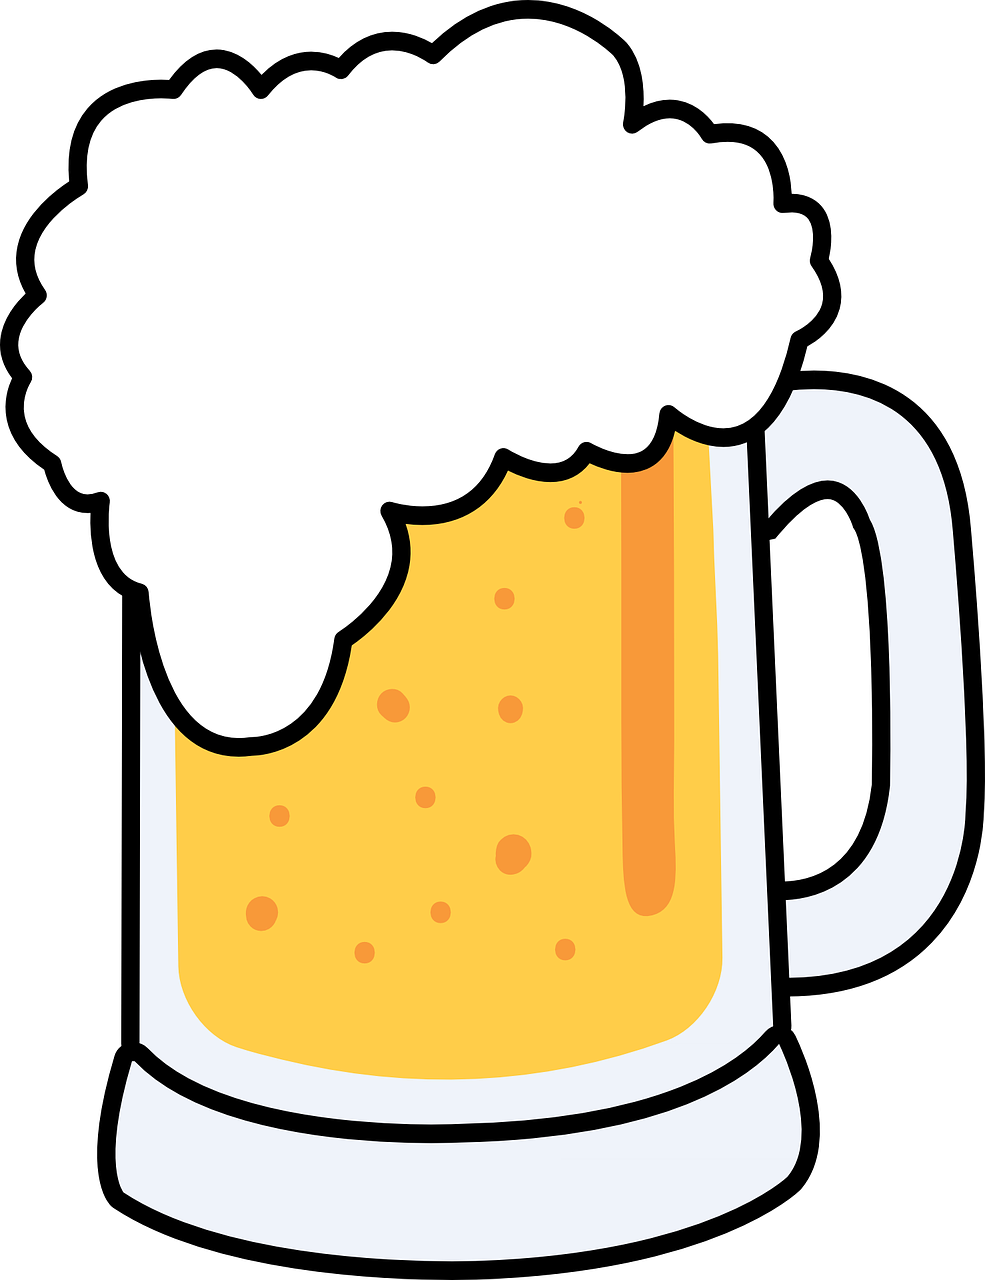 Alcohol clipart beer cup #4